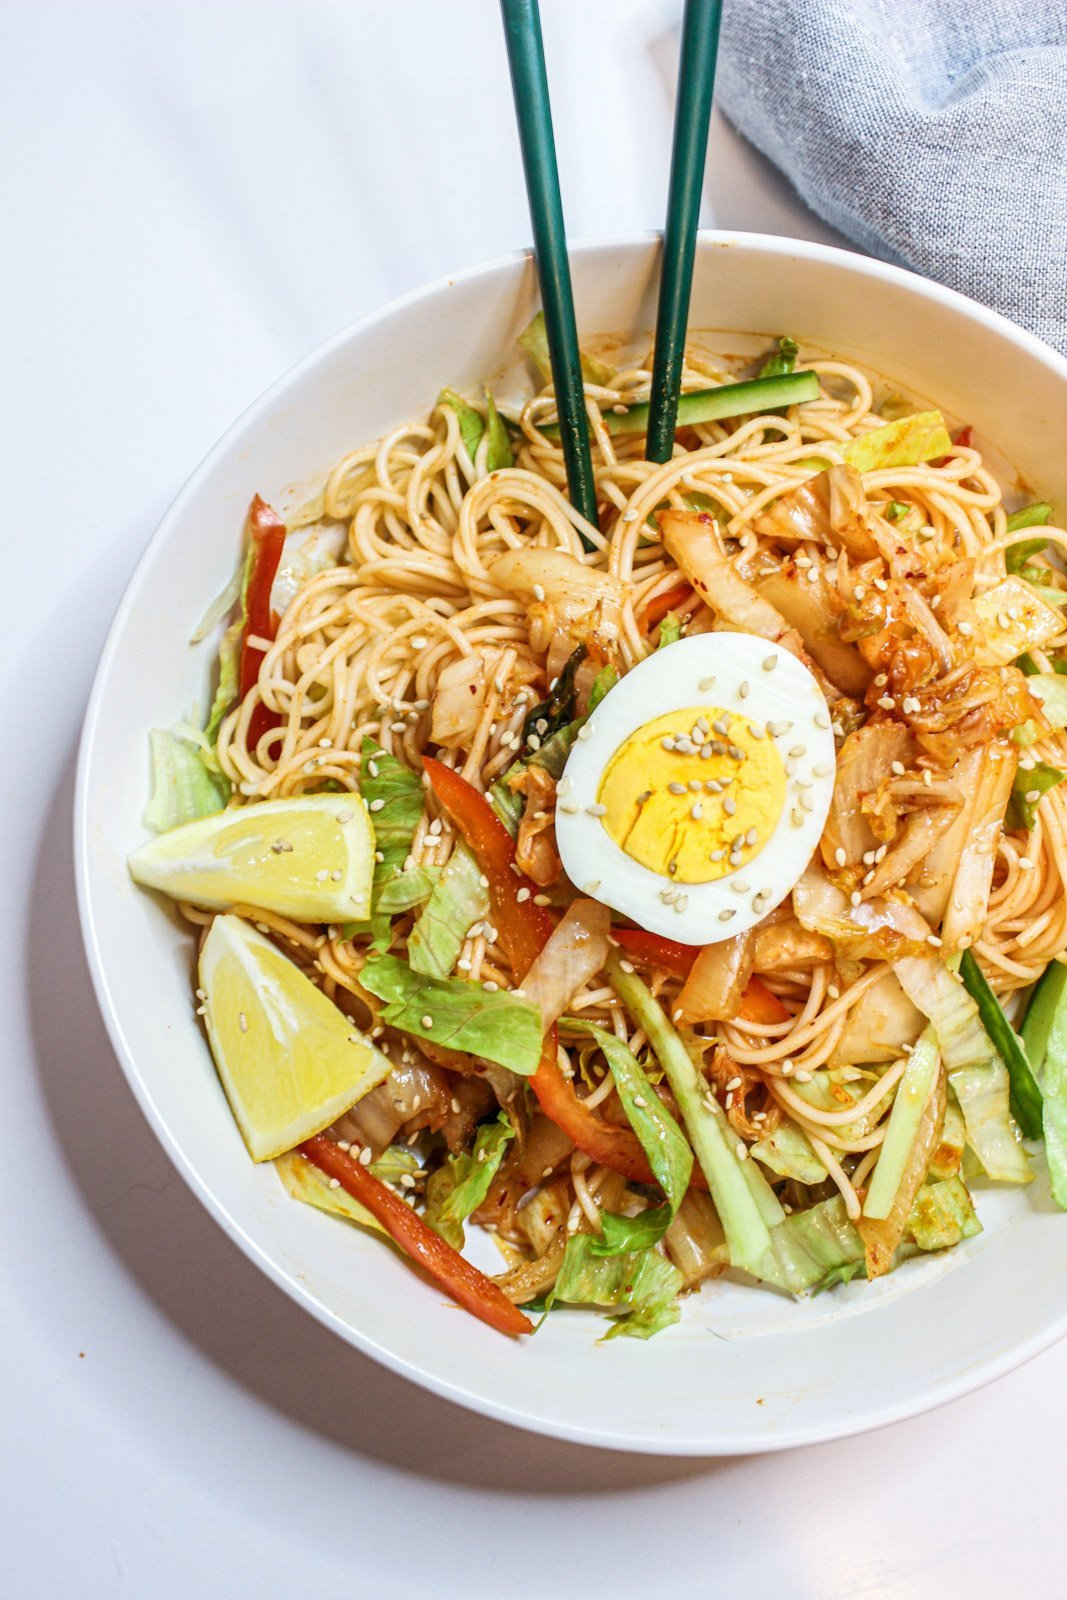 Simple and Delicious Recipes from Vancouver's Best Asian Chefs